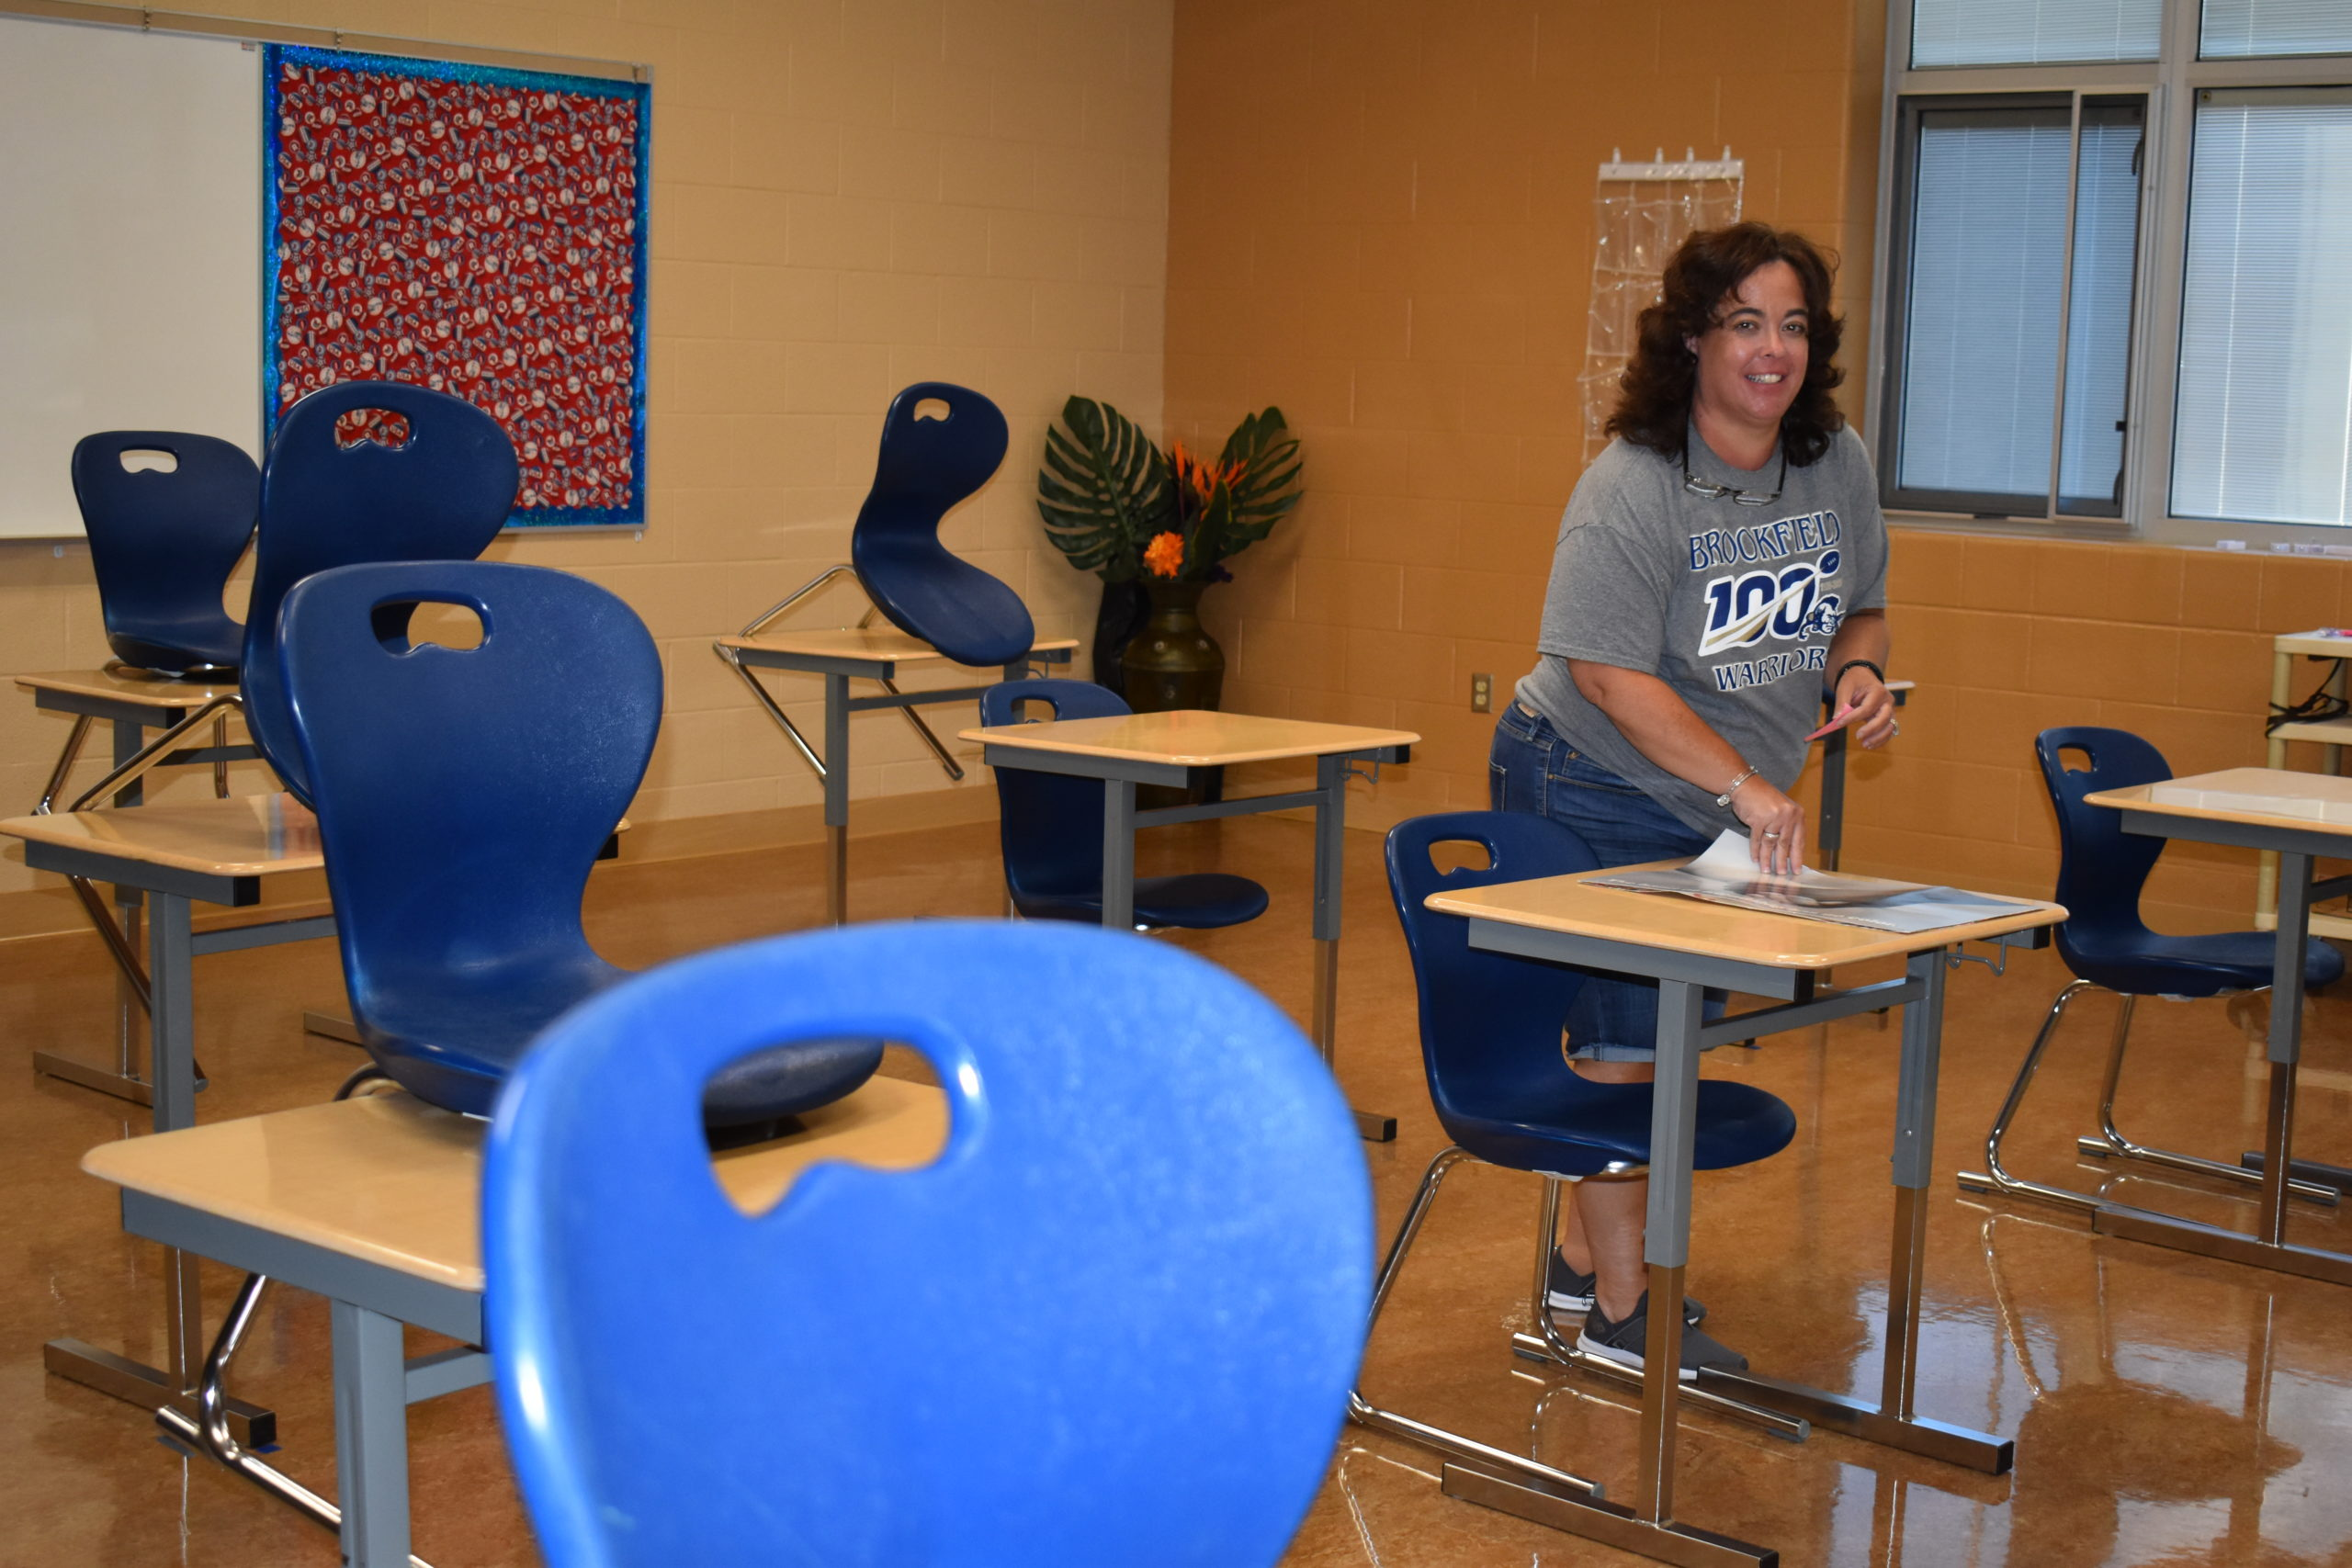 Brookfield High School teacher Mary Arp stands in her classroom showing the social distance arranging of desks. Typically, she has 28 desks in the room but health guidelines now permit no more than 15.